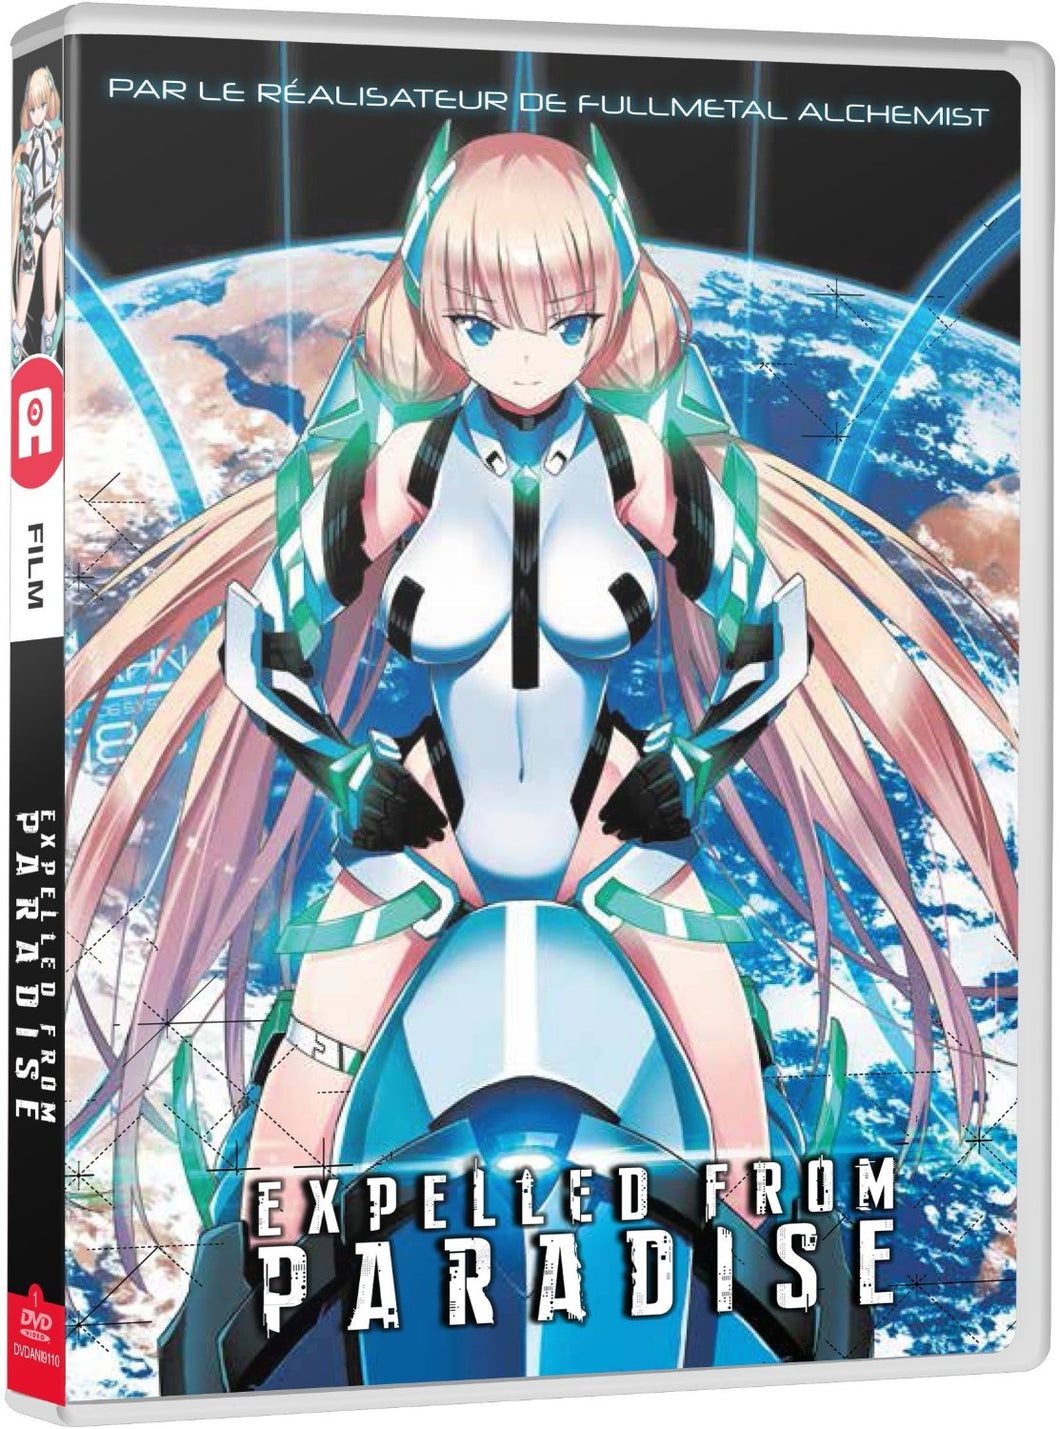 EXPELLED FROM PARADISE - Film - DVD